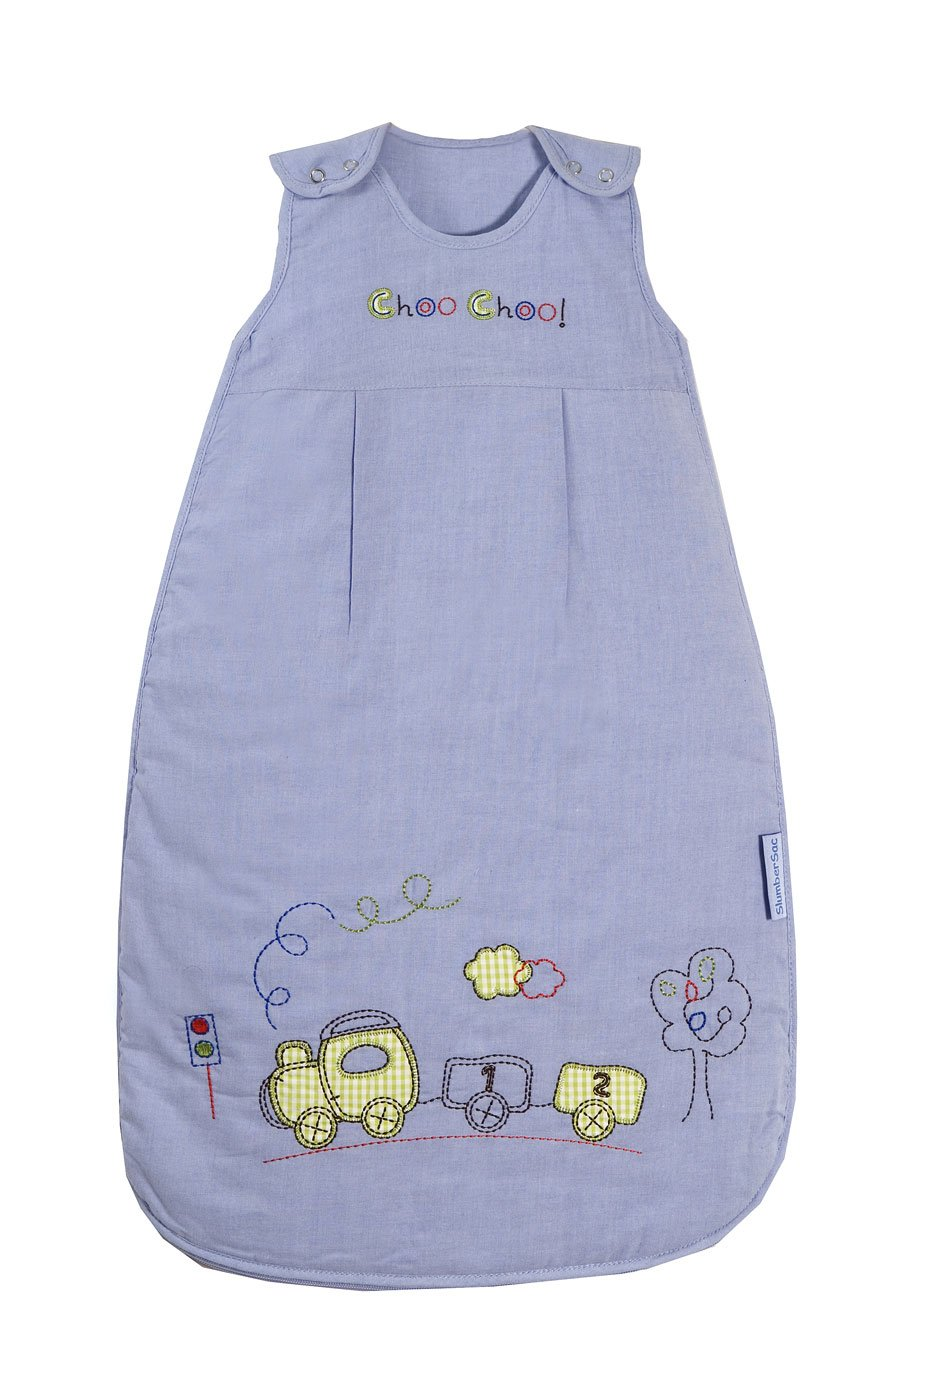 Slumbersafe Baby Sleeping Bag 2.5 Tog - Choo Choo, 6-18 months/MEDIUM